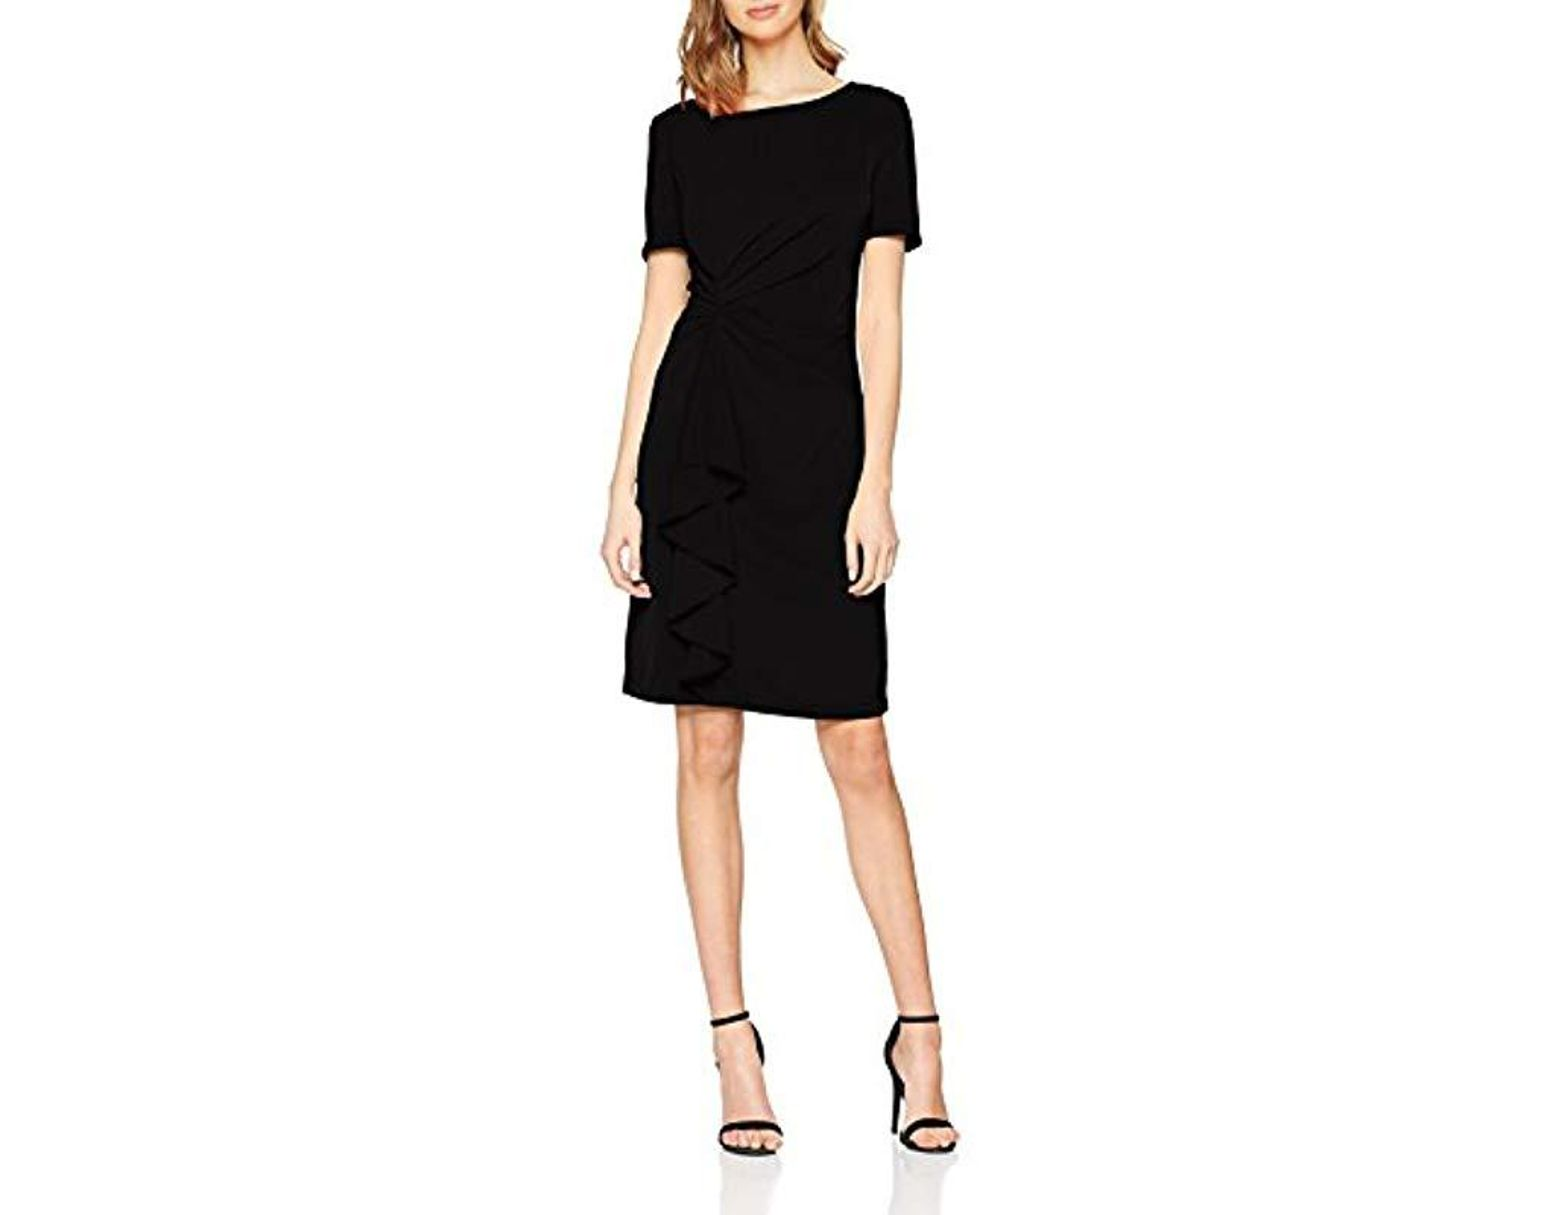 32e7f360606df Vero Moda Ladies Dress Round Neck With A Small Arm And Ruffles in ...